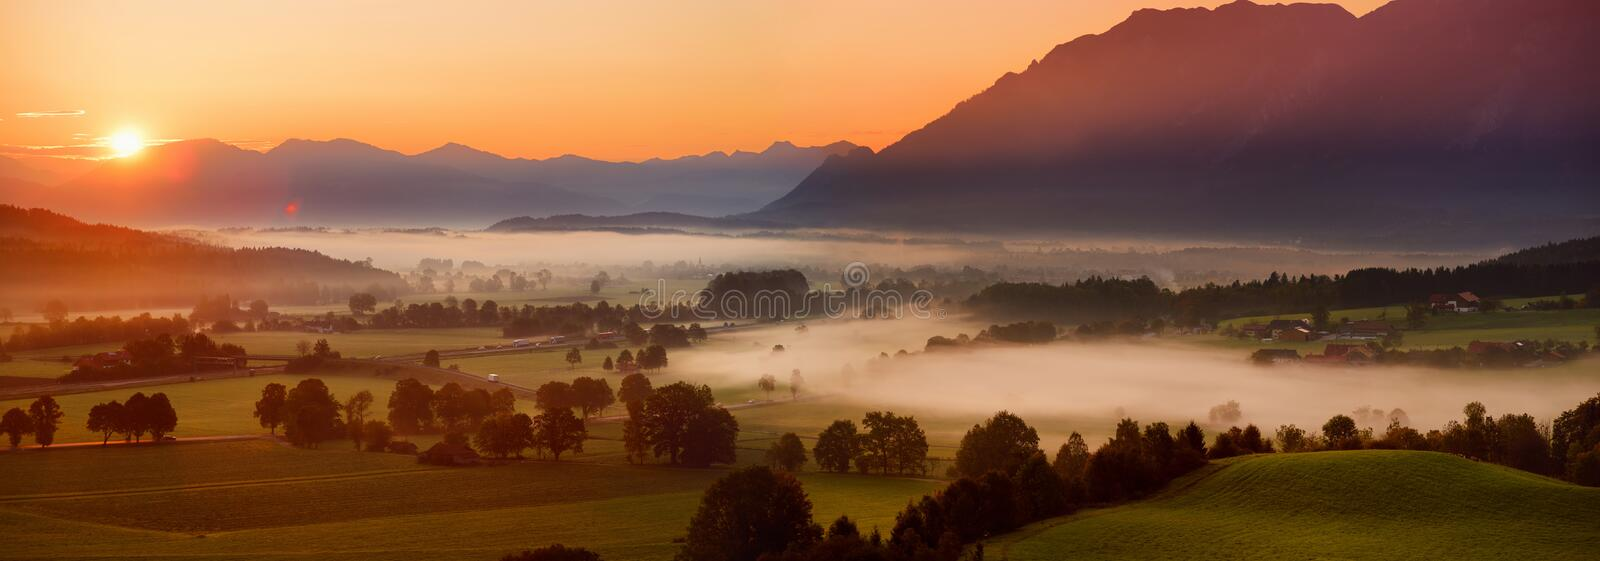 Breathtaking morning lansdcape of small bavarian village covered in fog. Scenic view of Bavarian Alps at sunrise with majestic mou royalty free stock photo